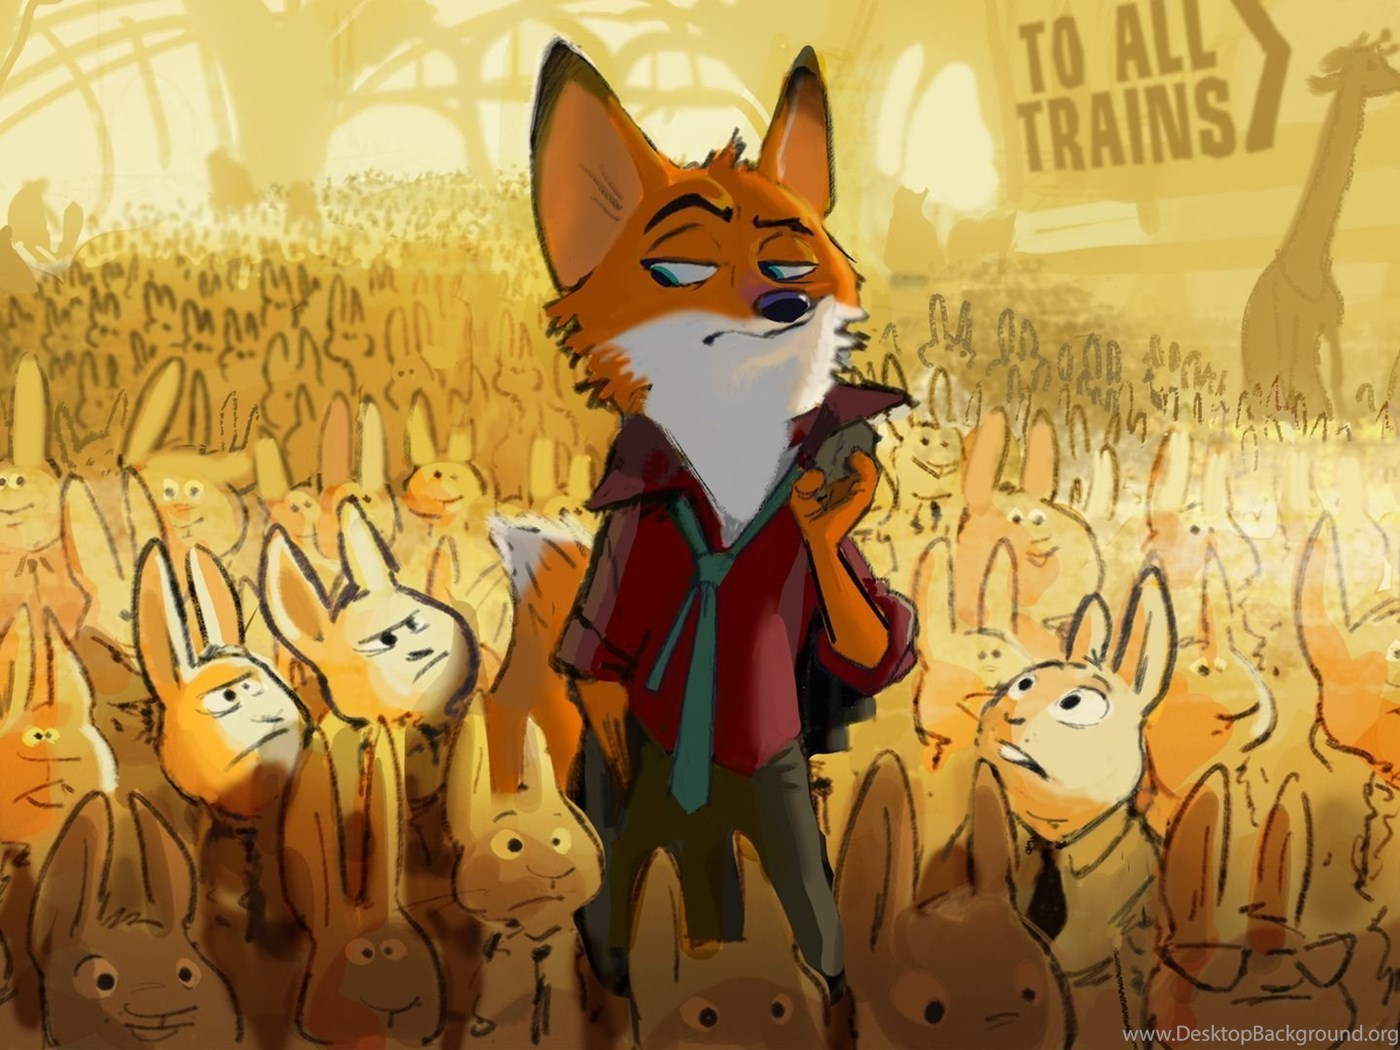 1920x1080 2016 Zootopia Disney Zootopia Movie Fox Hares Desktop Background